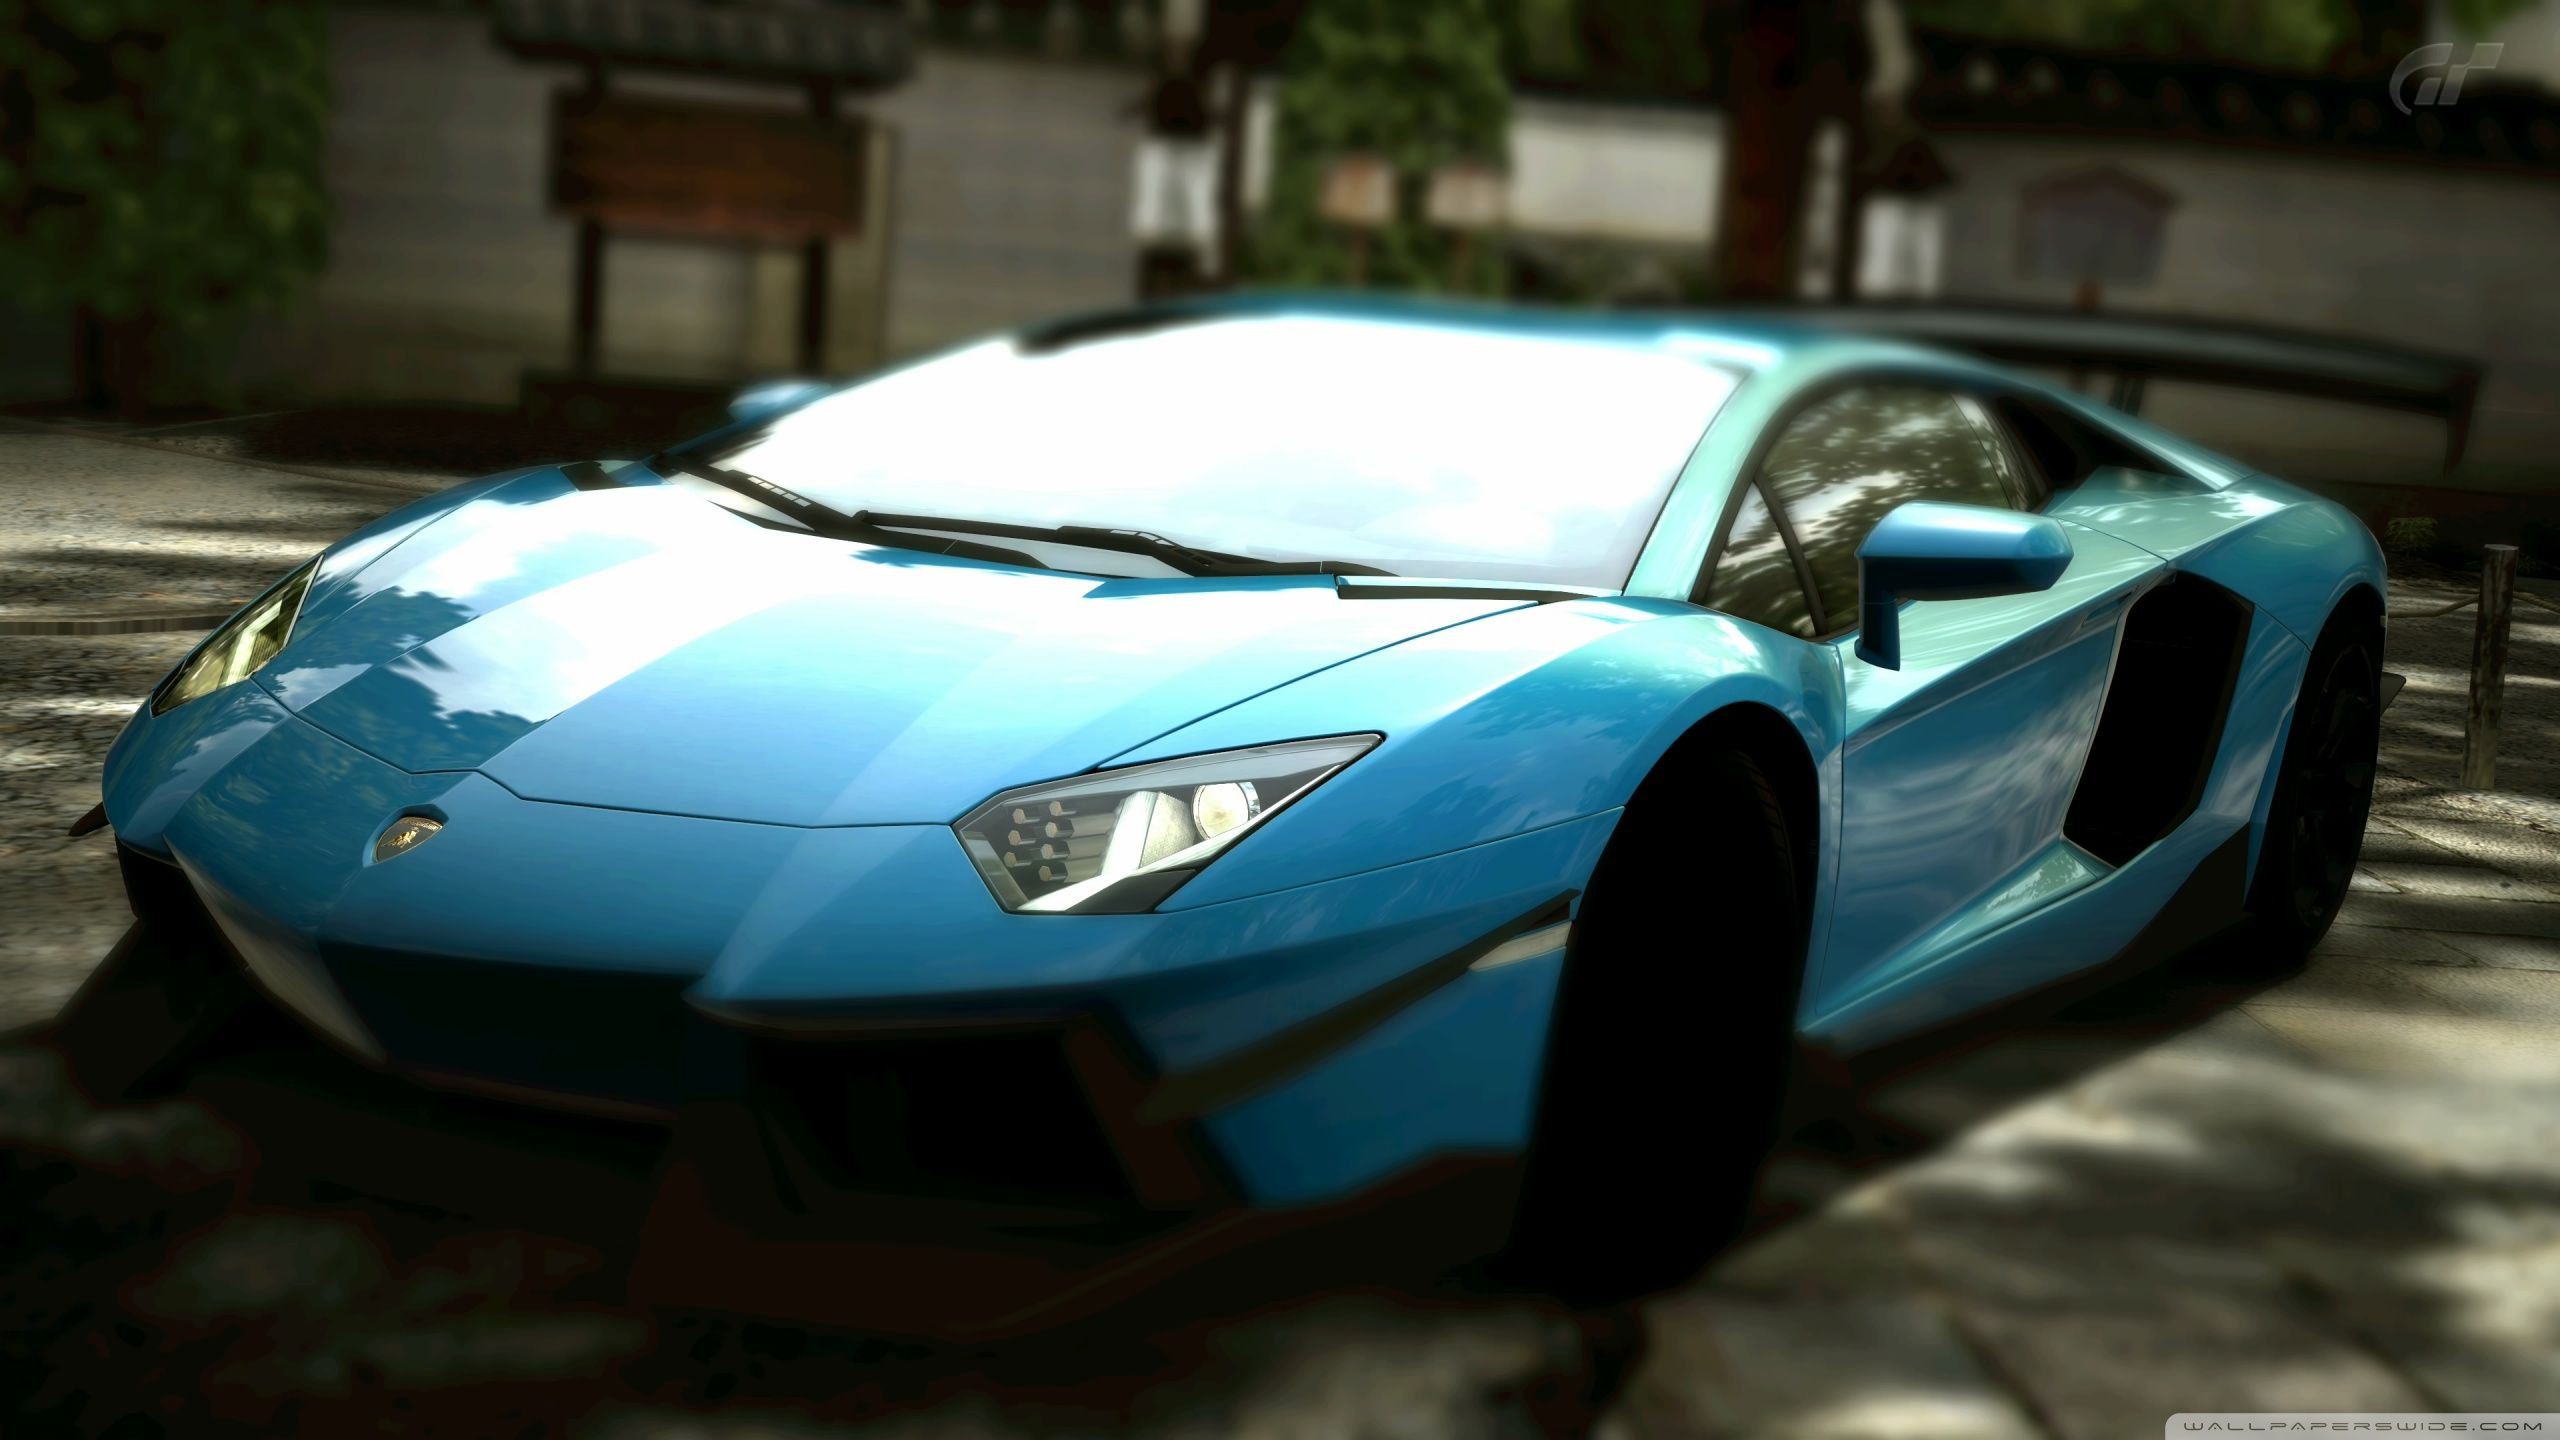 Lamborghini Aventador Hd Wallpapers Get Free Top Quality Lamborghini Aventador Hd Wallpapers For Your Desktop